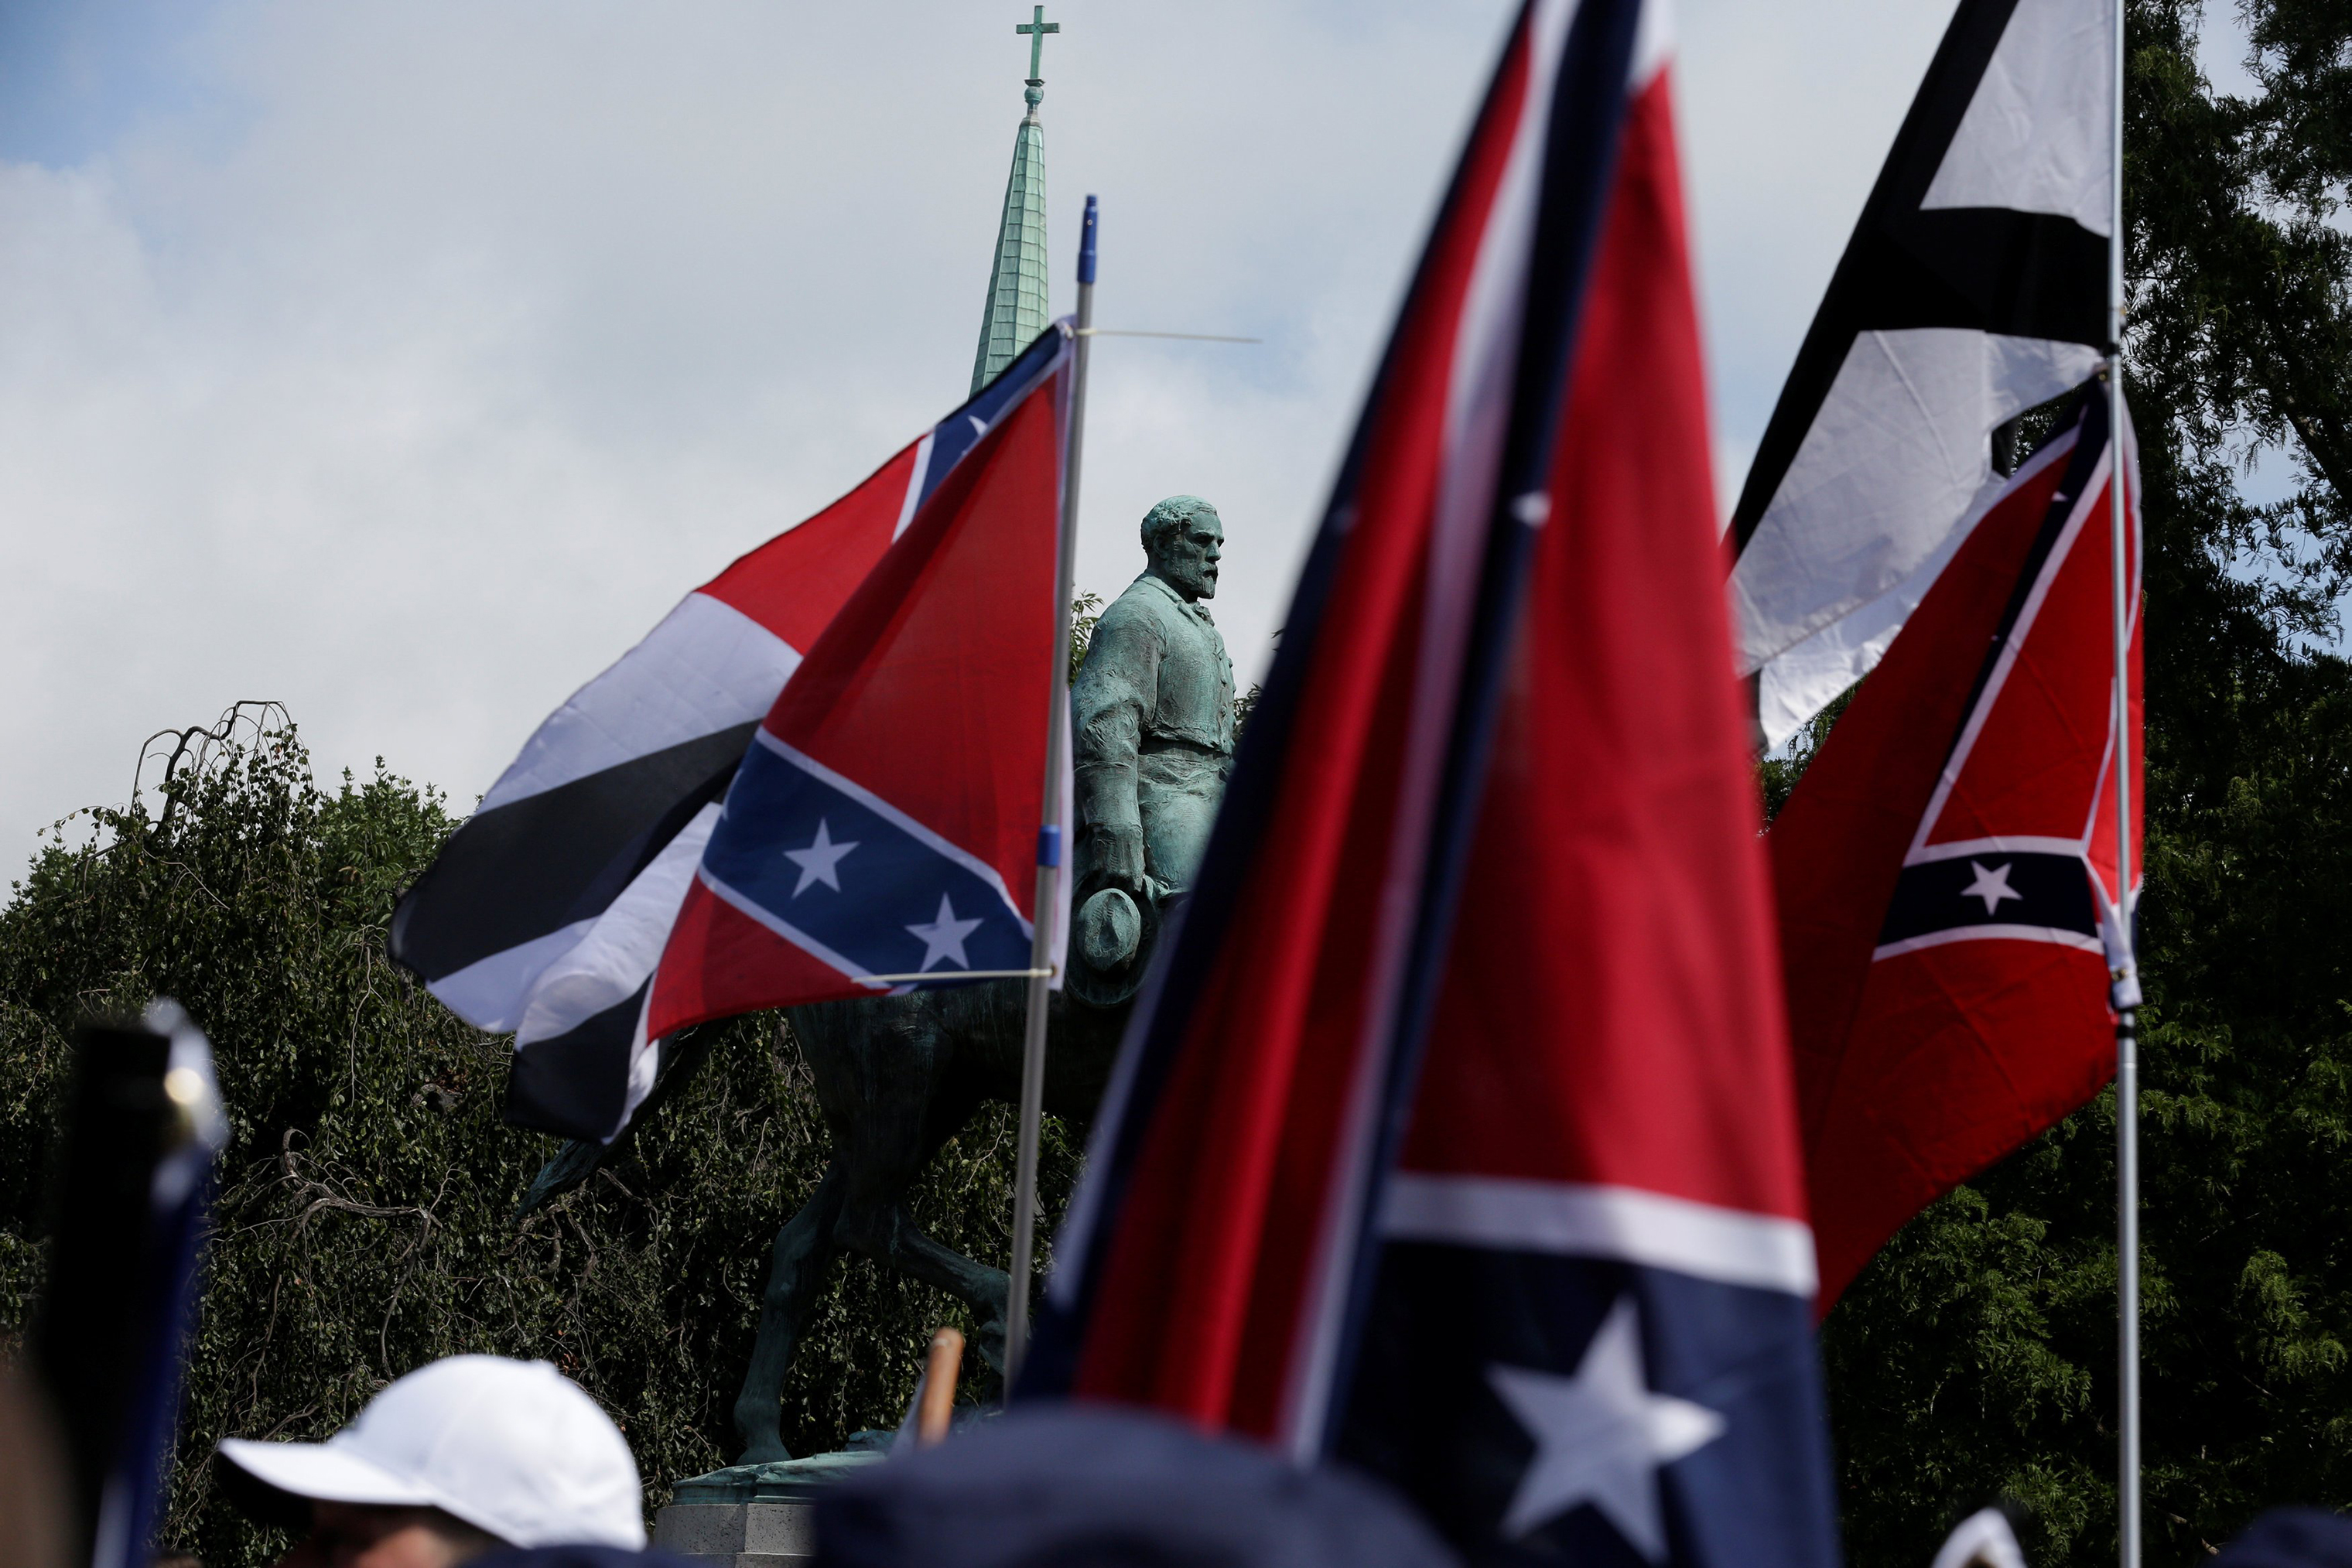 White nationalists gathered near the Robert E. Lee statue in Charlottesville, Va., on Aug. 12, 2017.